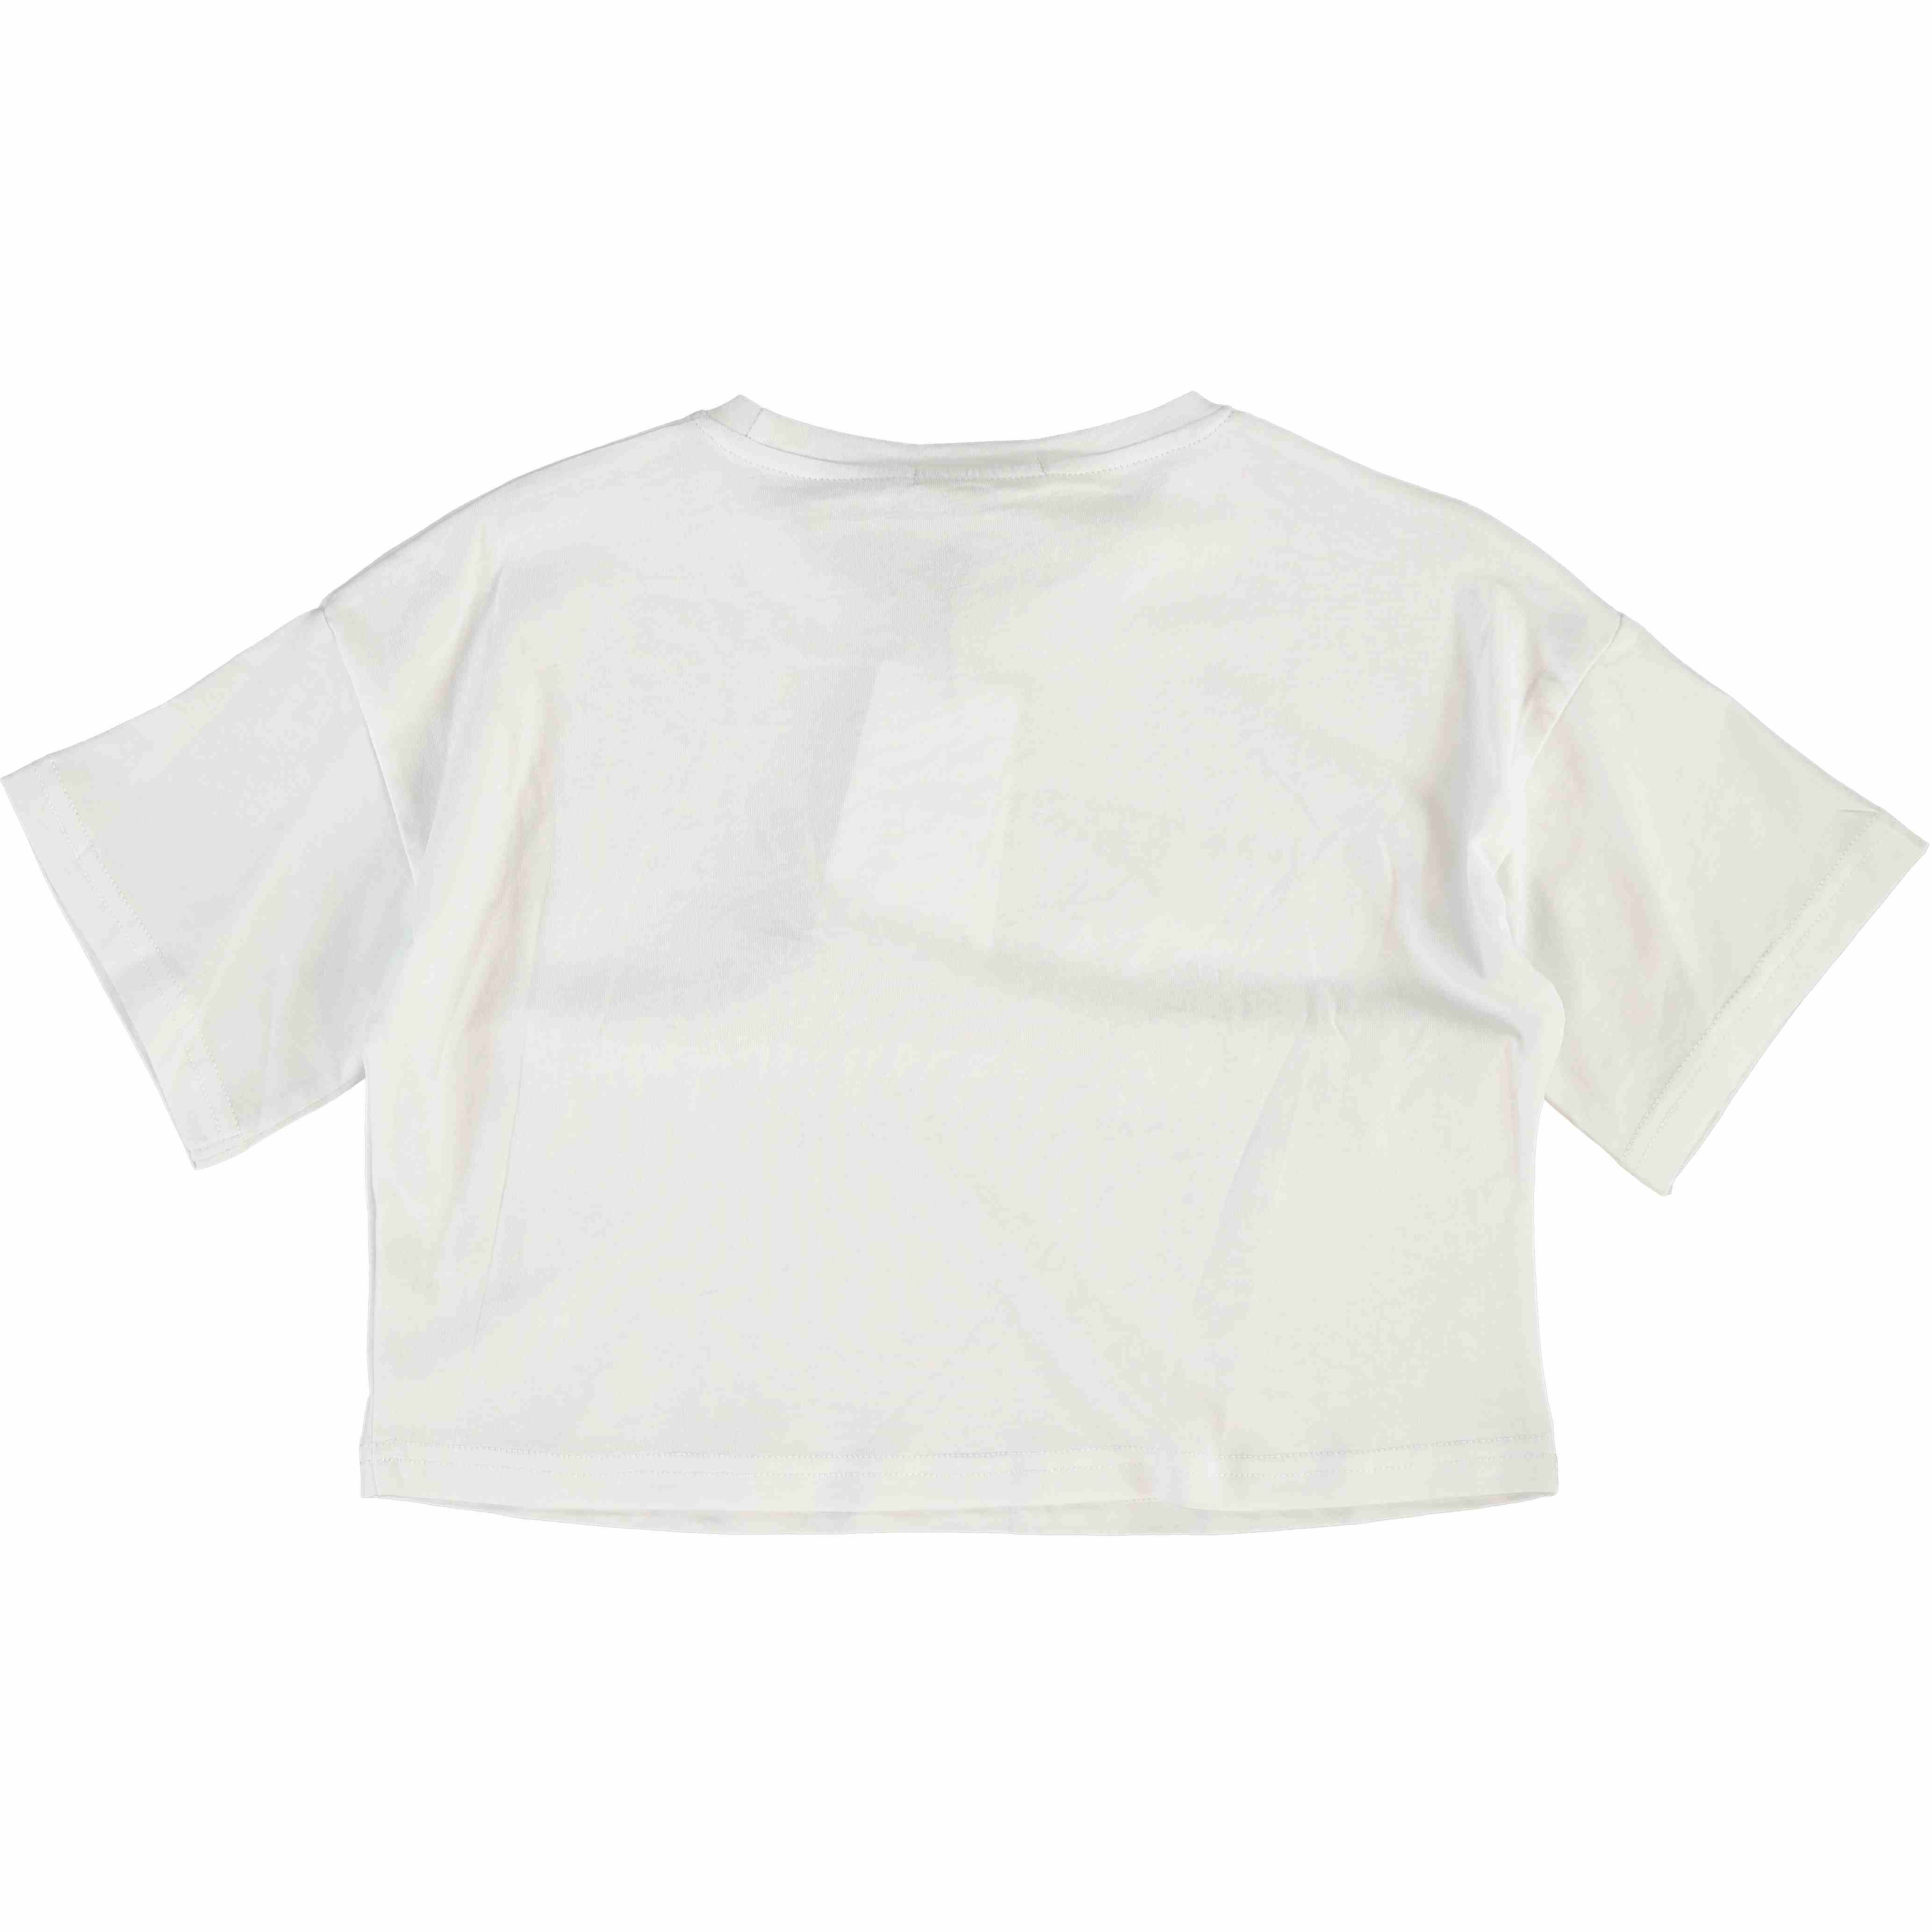 T-SHIRT RAGAZZA TO BE TOO TO BE TOO   T-shirt   TBT10700